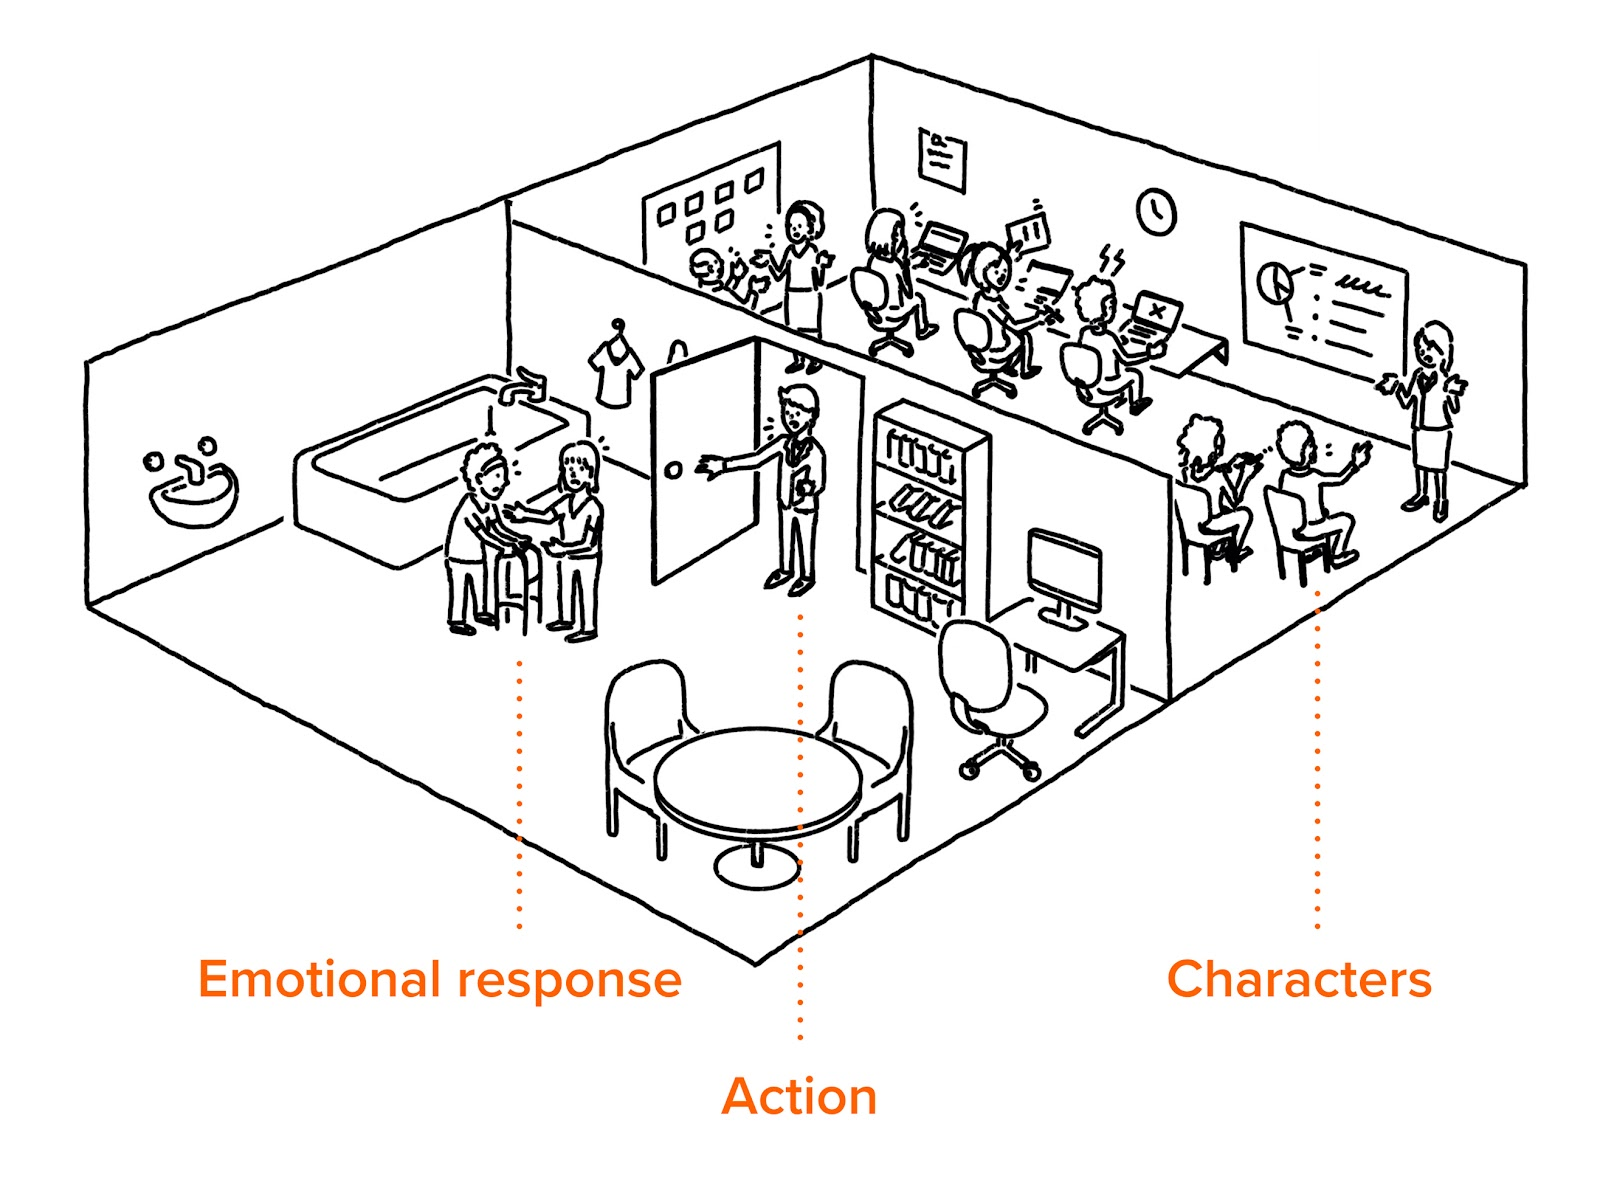 A visual metaphor, with labels, for a home healthcare service illustrates the patient's emotional response when their experience is interrupted by acitivities that should take place behind the scenes.